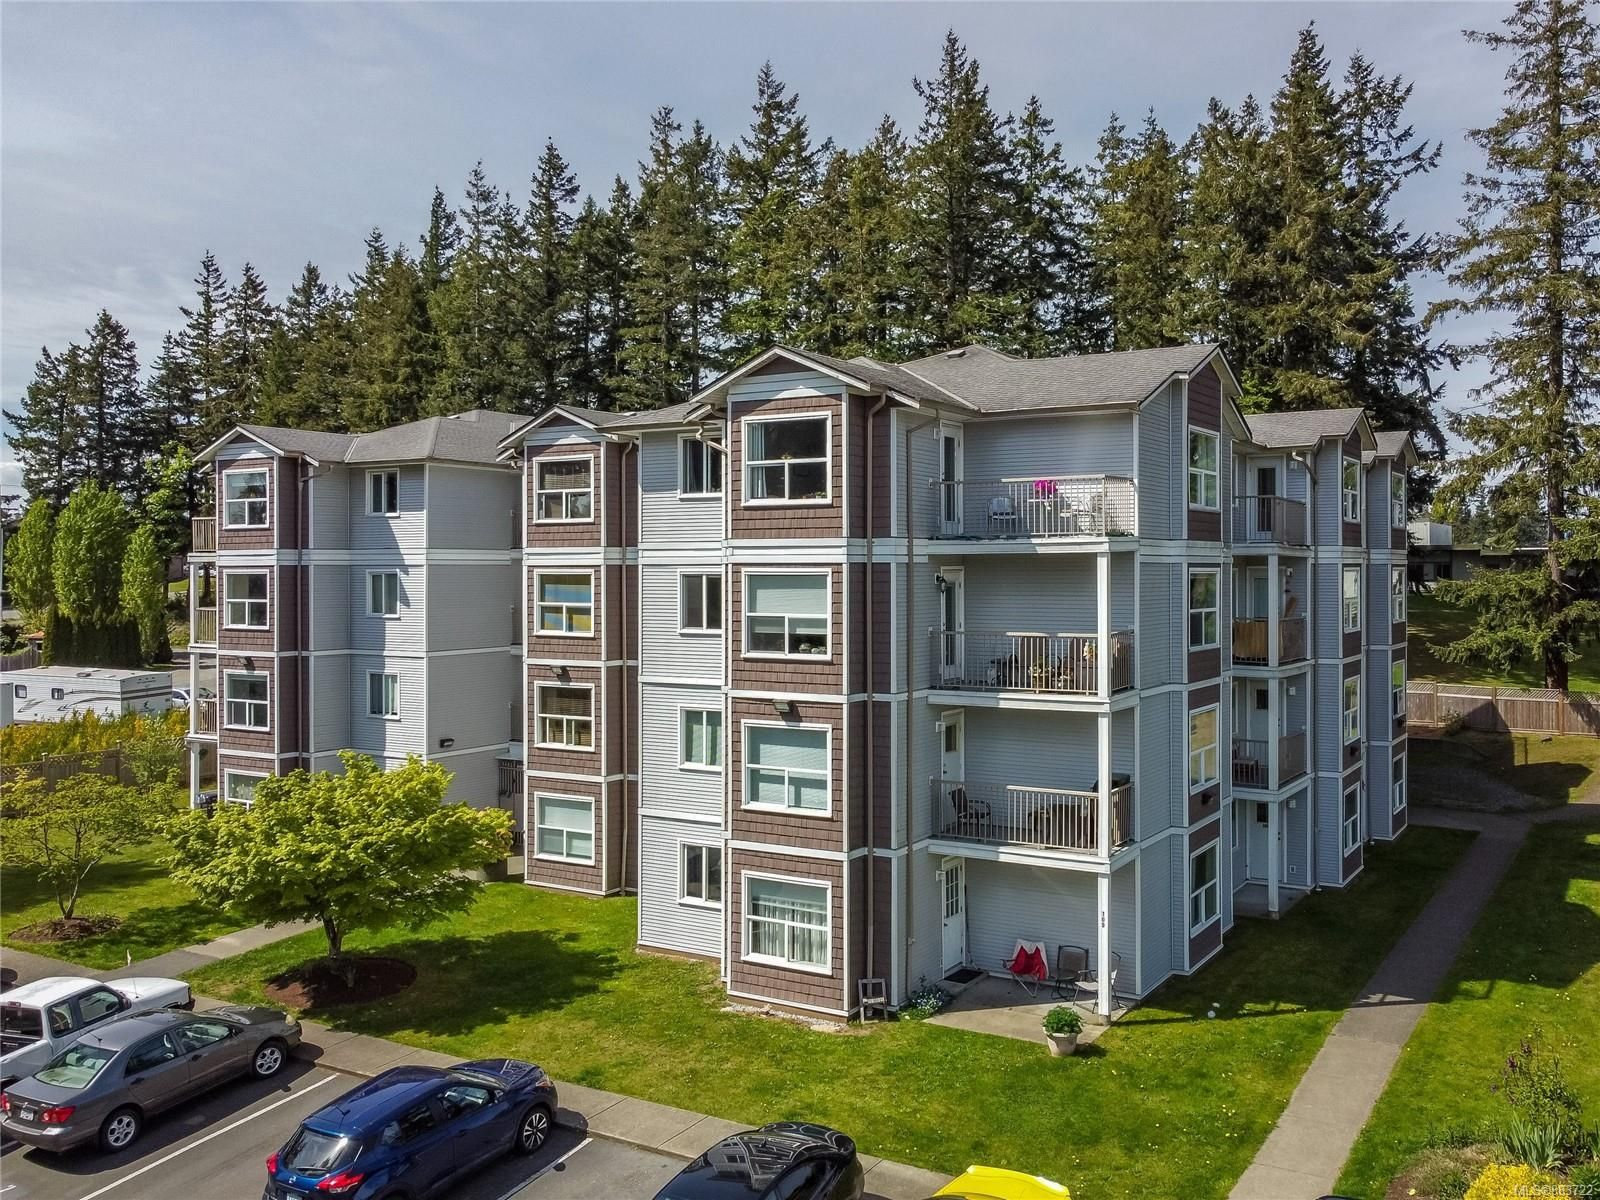 Main Photo: 209 282 Birch St in : CR Campbell River Central Condo for sale (Campbell River)  : MLS®# 883722